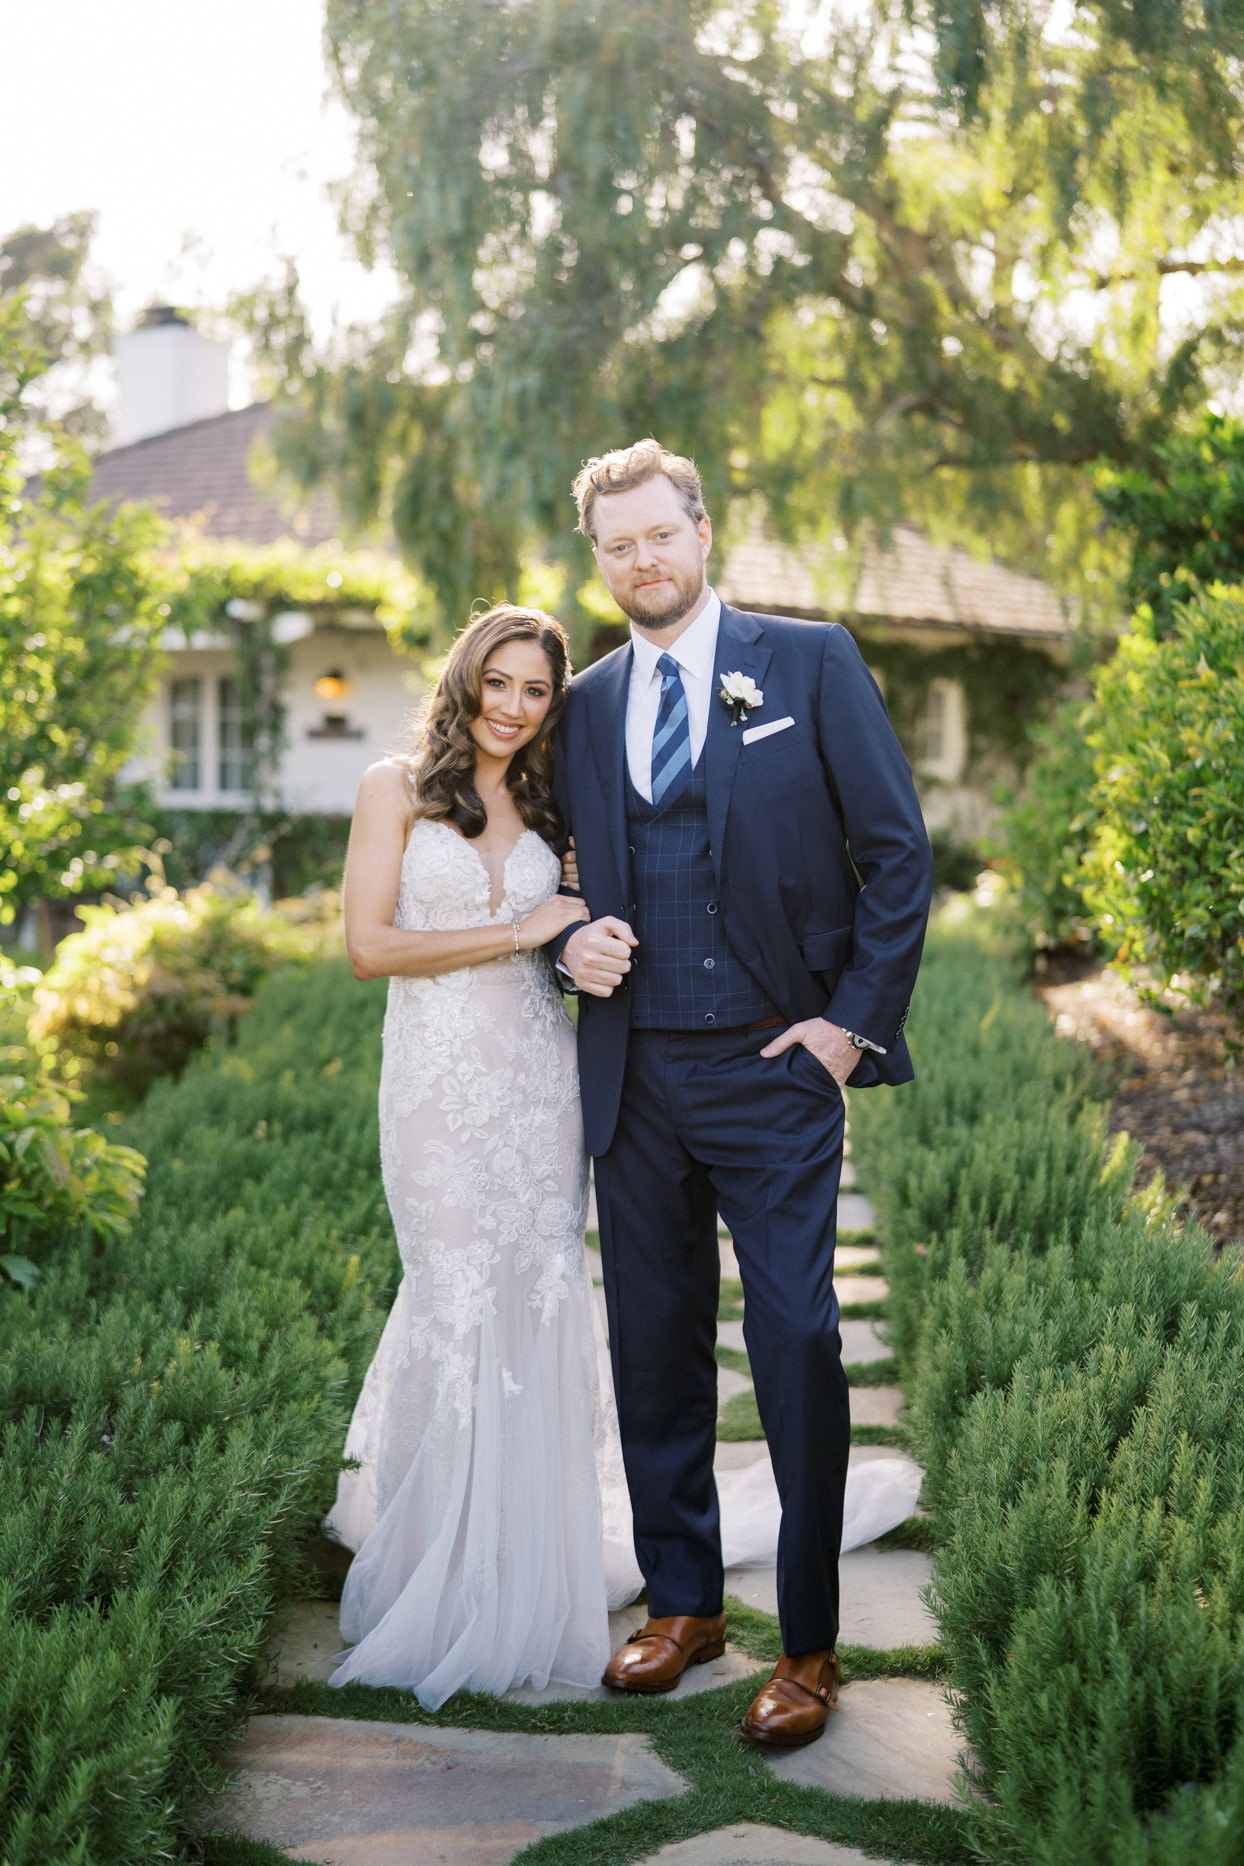 bride and groom smile for portrait on stone pathway